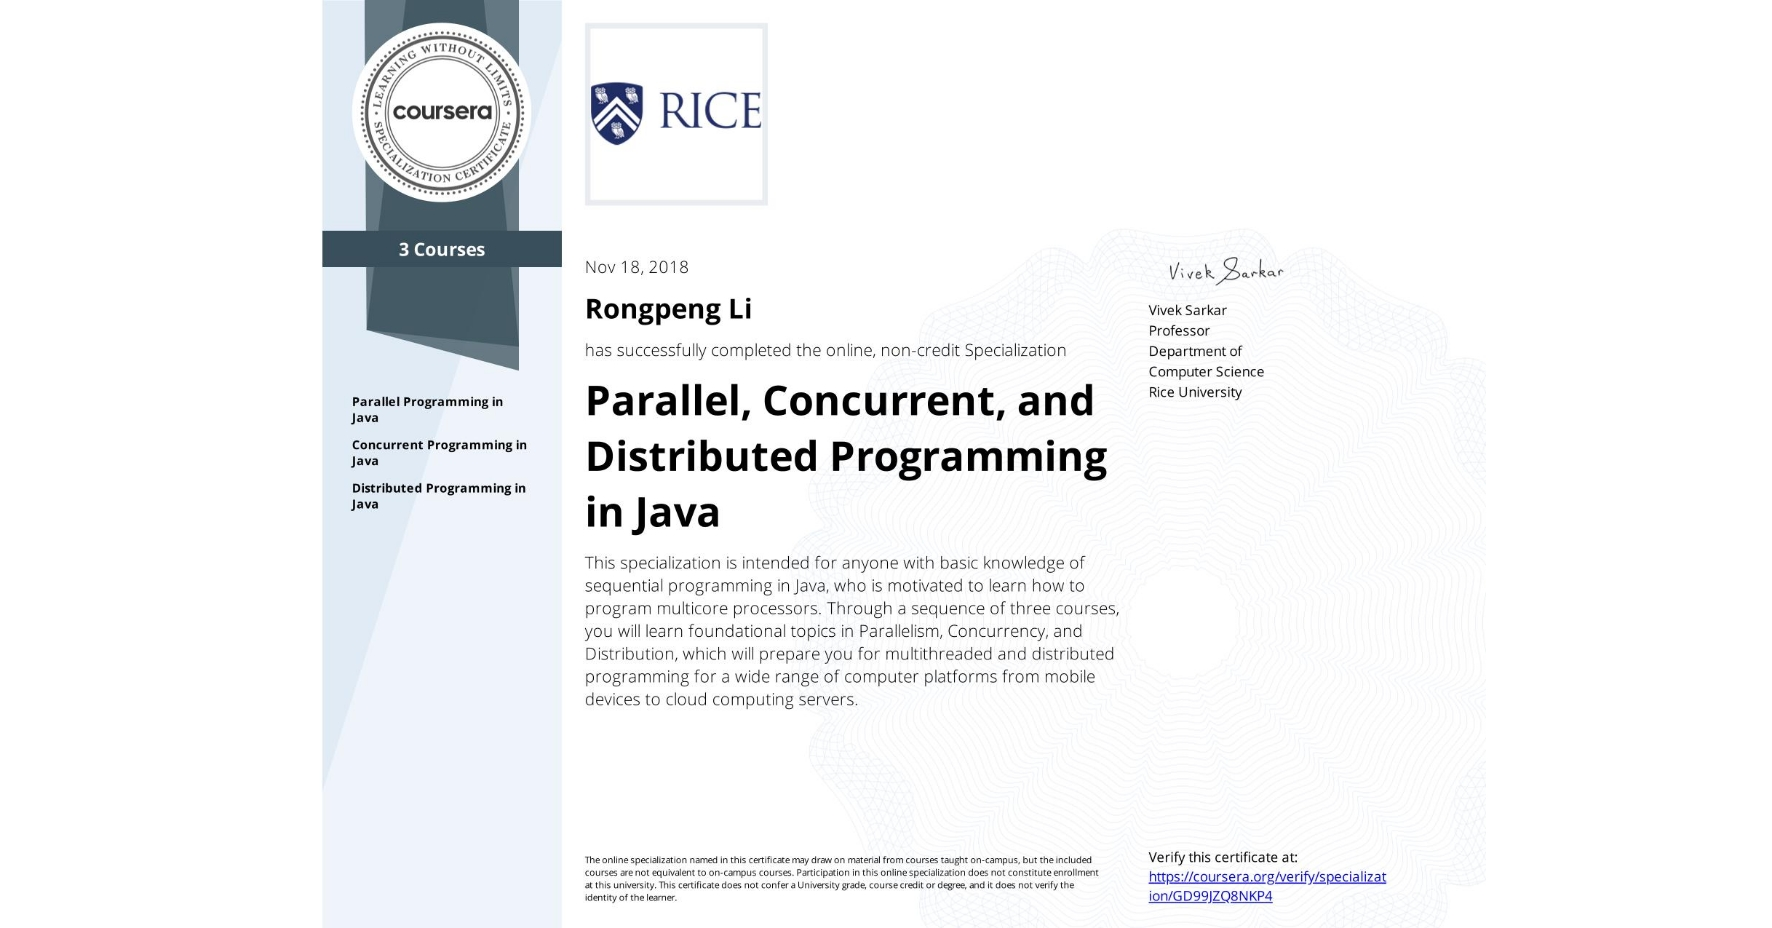 View certificate for Rongpeng Li, Parallel, Concurrent, and Distributed Programming in Java, offered through Coursera. This specialization is intended for anyone with basic knowledge of sequential programming in Java, who is motivated to learn how to program multicore processors. Through a sequence of three courses, you will learn foundational topics in Parallelism, Concurrency, and Distribution, which will prepare you for multithreaded and distributed programming for a wide range of computer platforms from mobile devices to cloud computing servers.